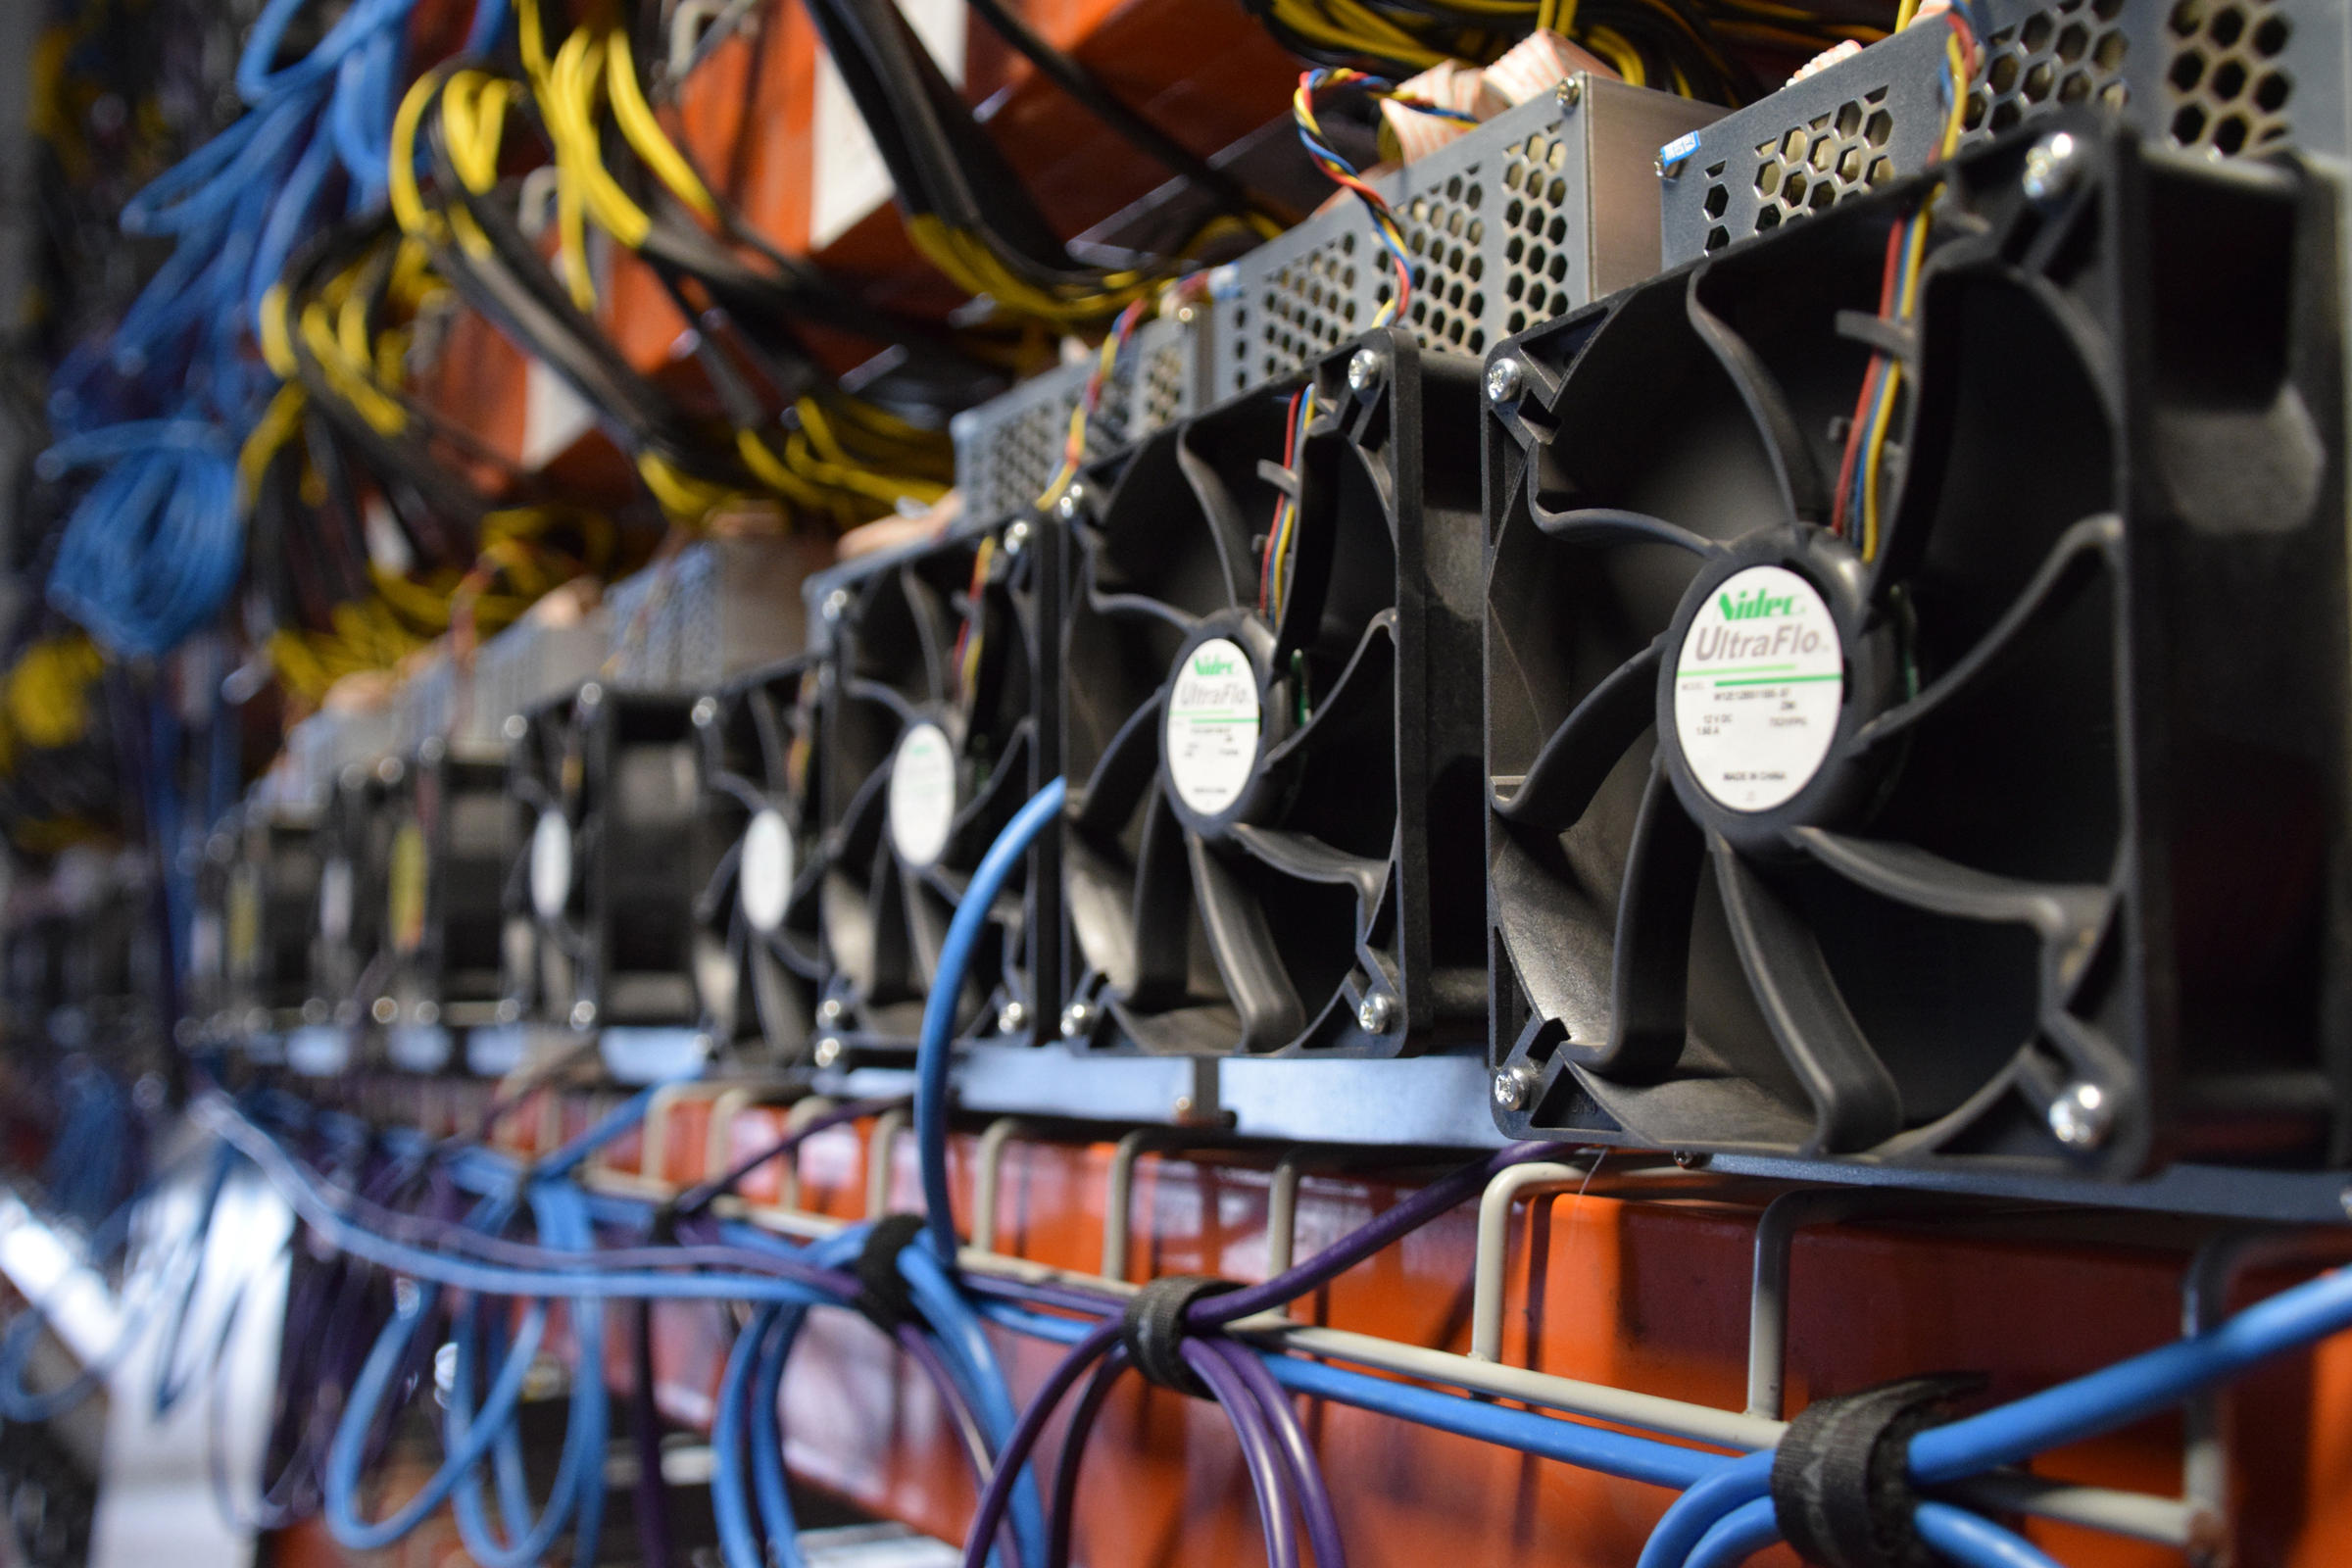 Cryptocurrency miner found at work